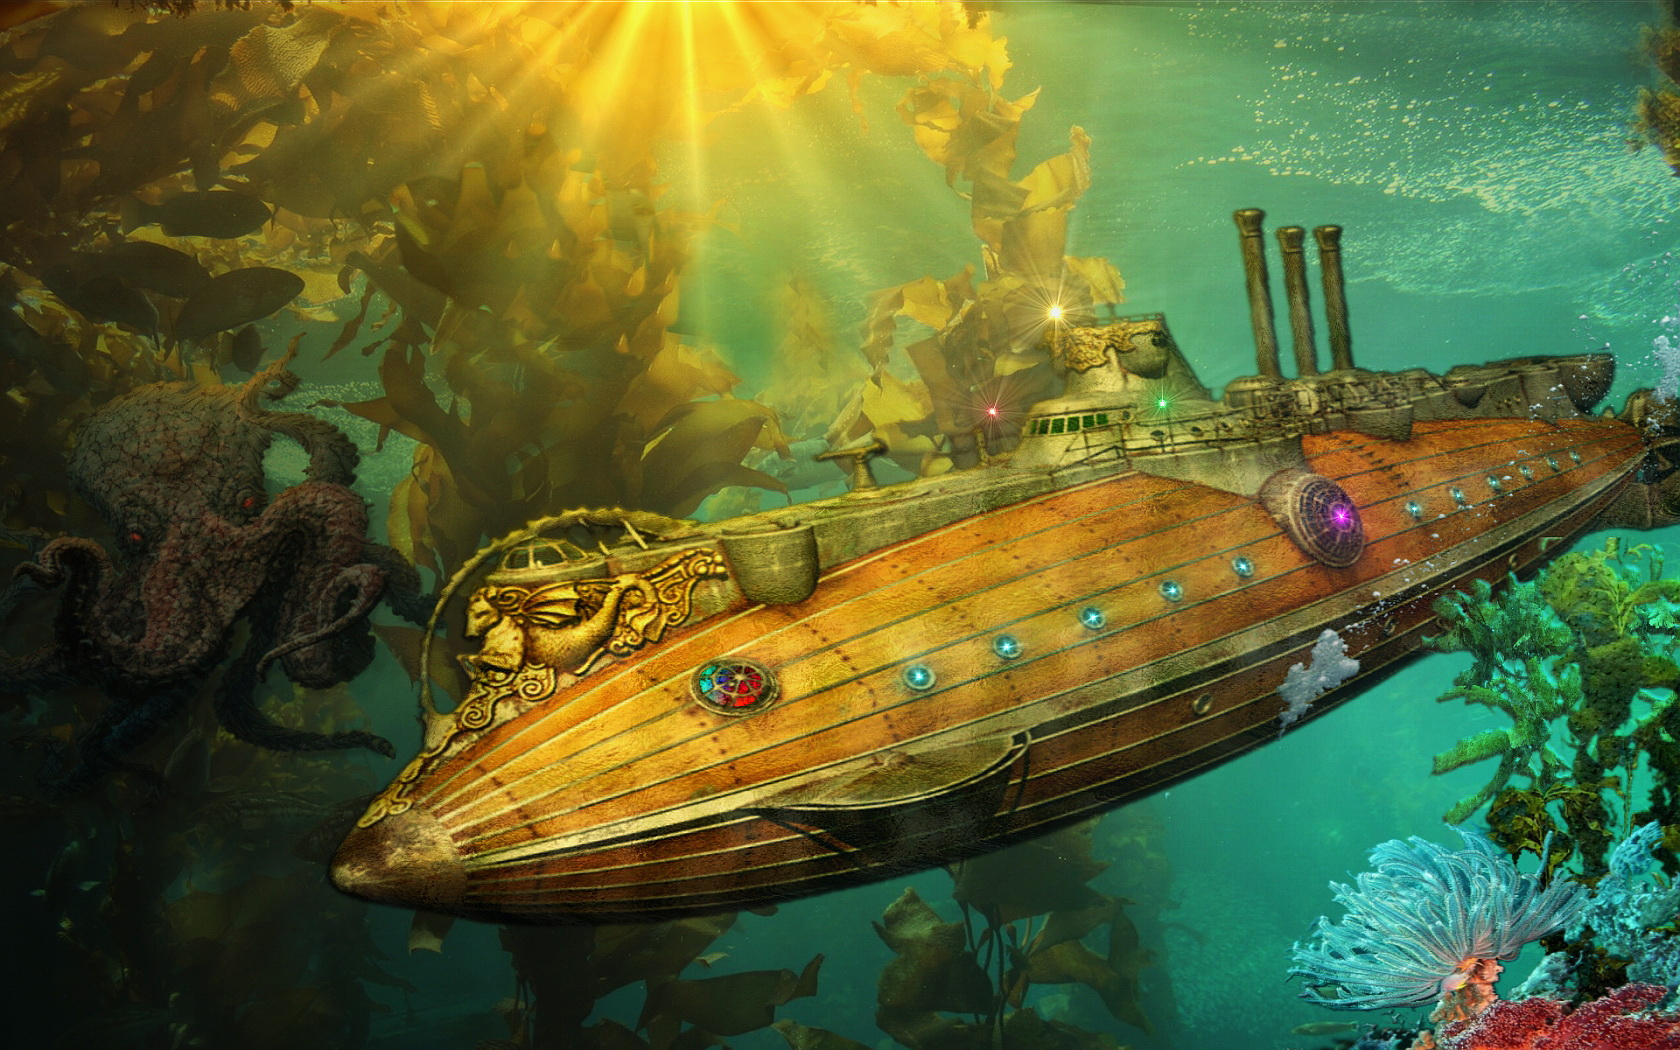 Posted October 29 2011 in Cool Creative Fiction Submarine 1680x1050